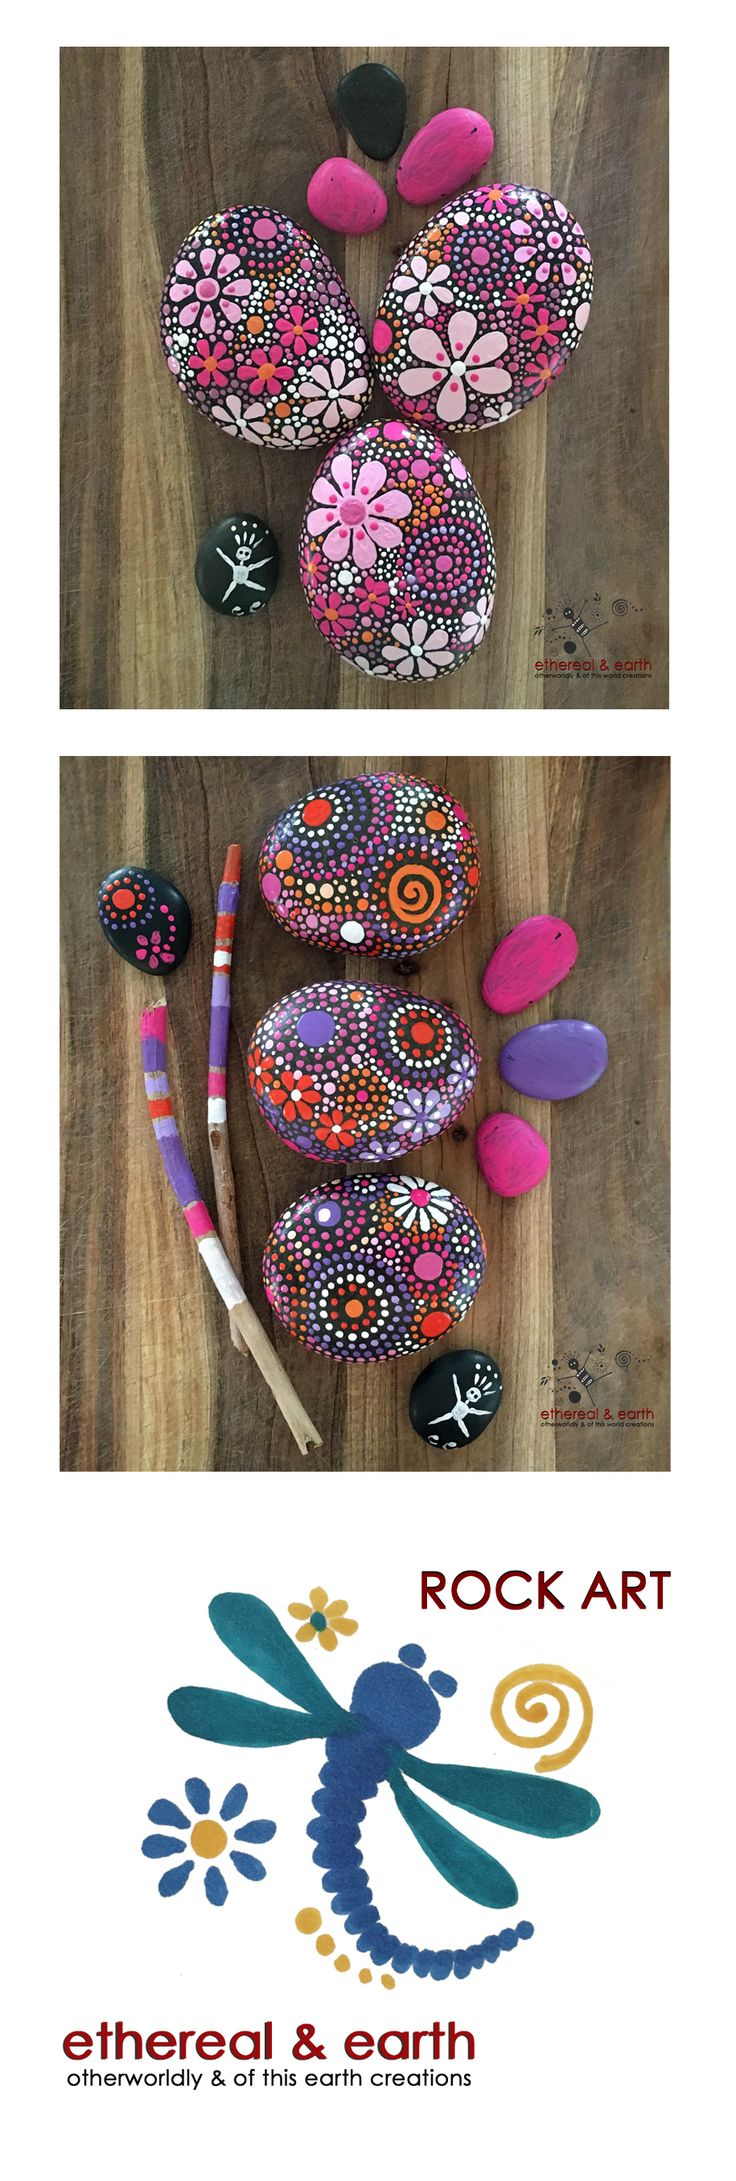 Rock Art ! Hand Painted River Rock - Pink & Purple Stones - Mandala Inspired Design - Free US Shipping - ethereal & earth